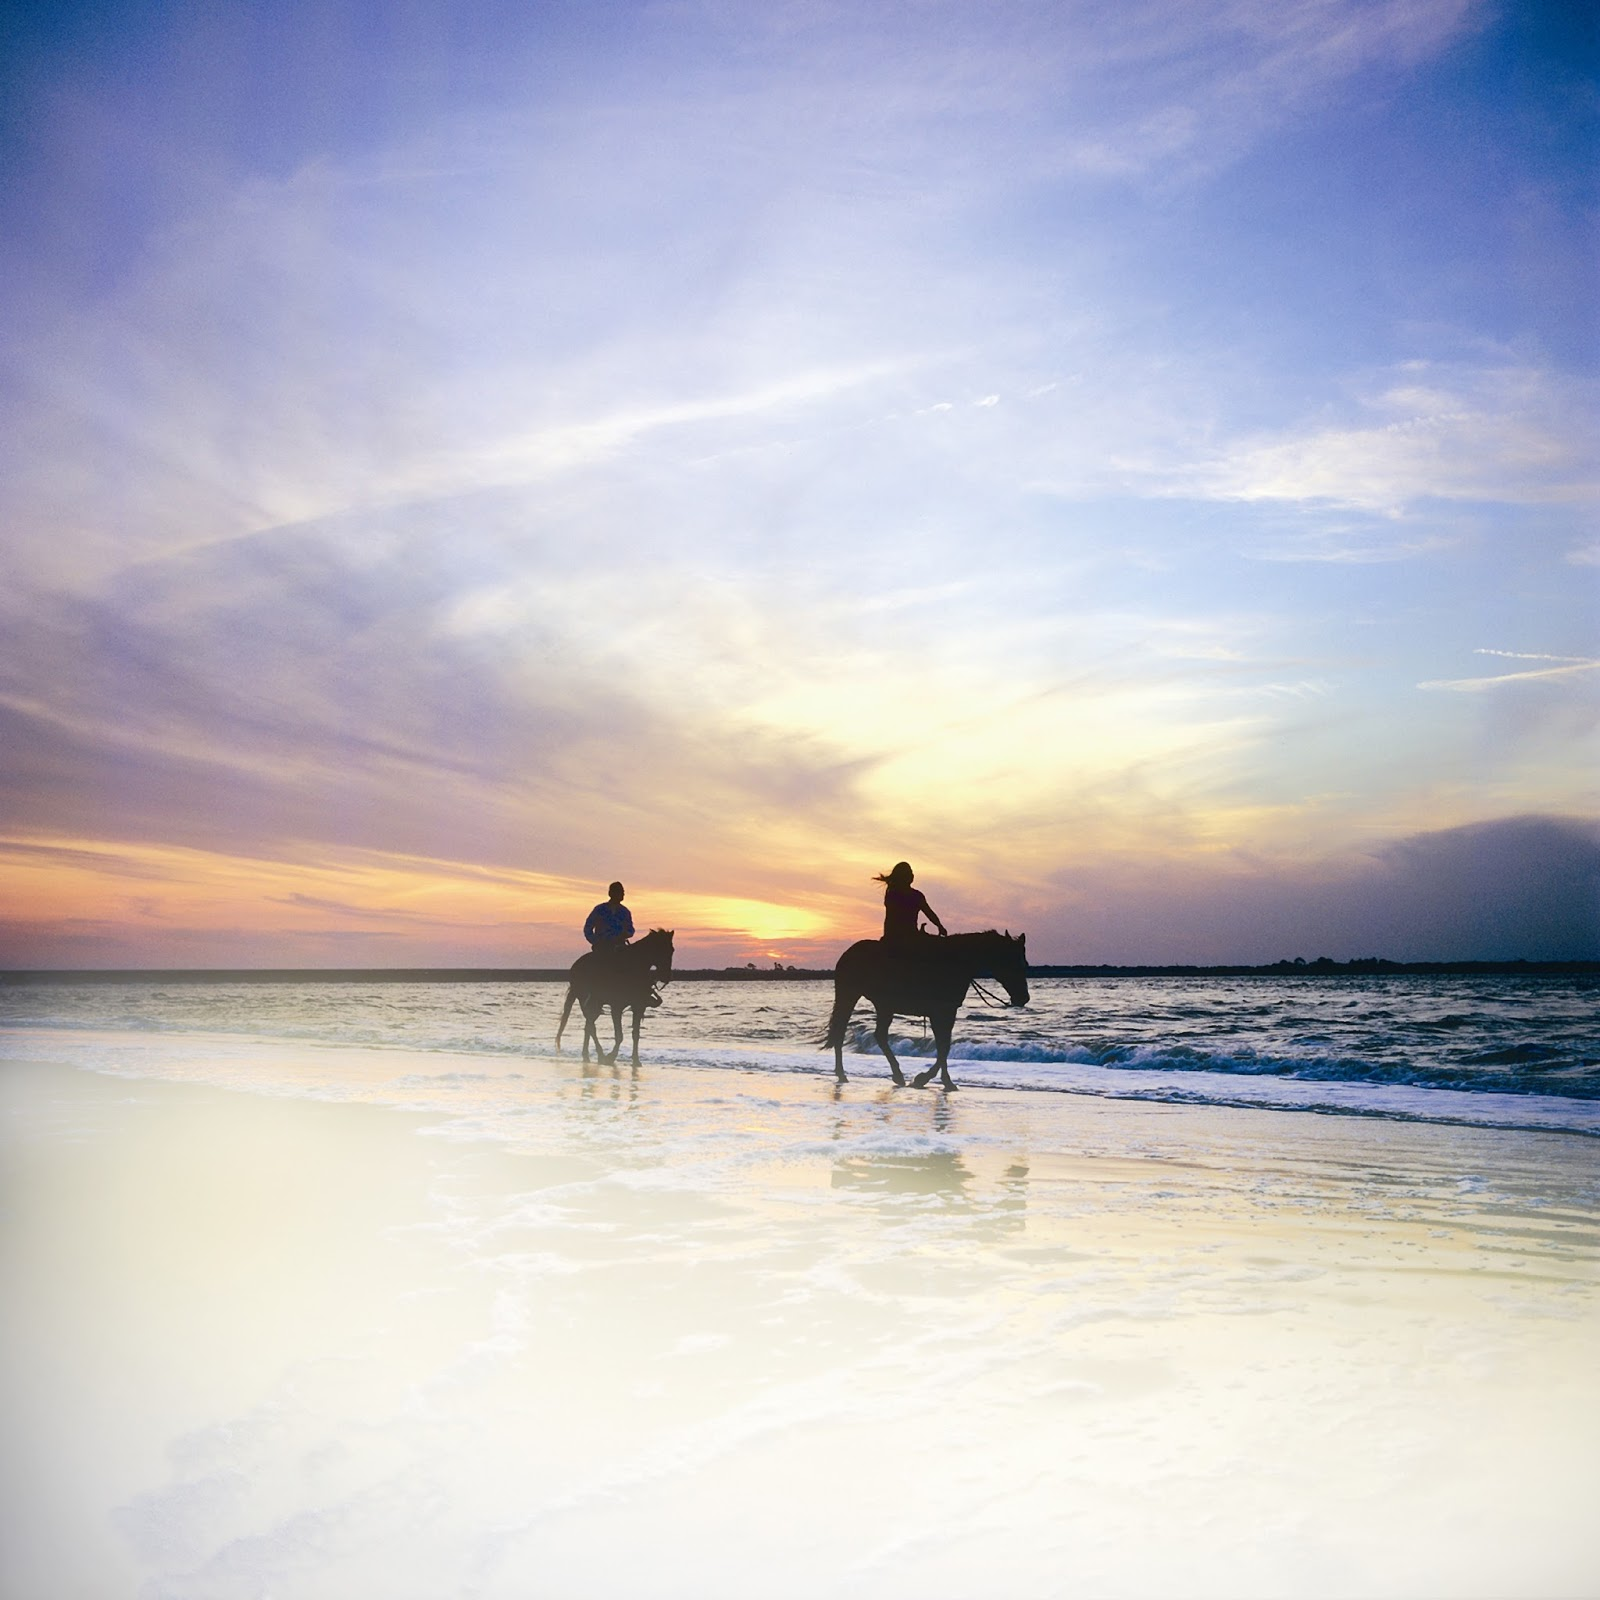 Horse back riding on the beach at sunset.